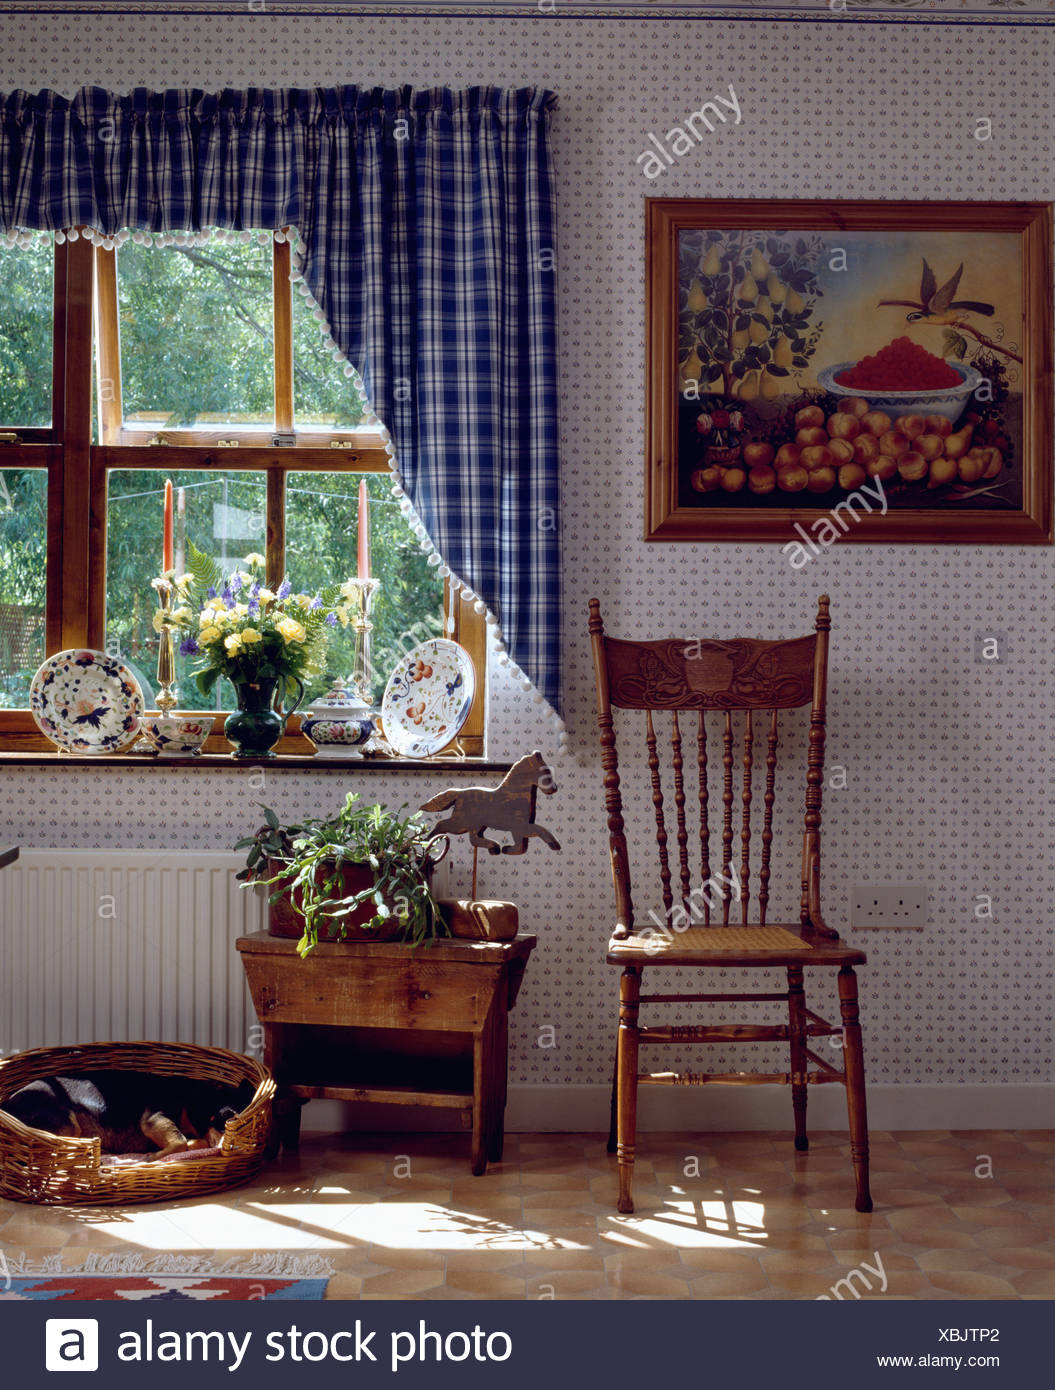 Picture On Wall Beside Window With Blue Checked Curtains In Dining Room  With Wallpaper And Antique Chair And Stool